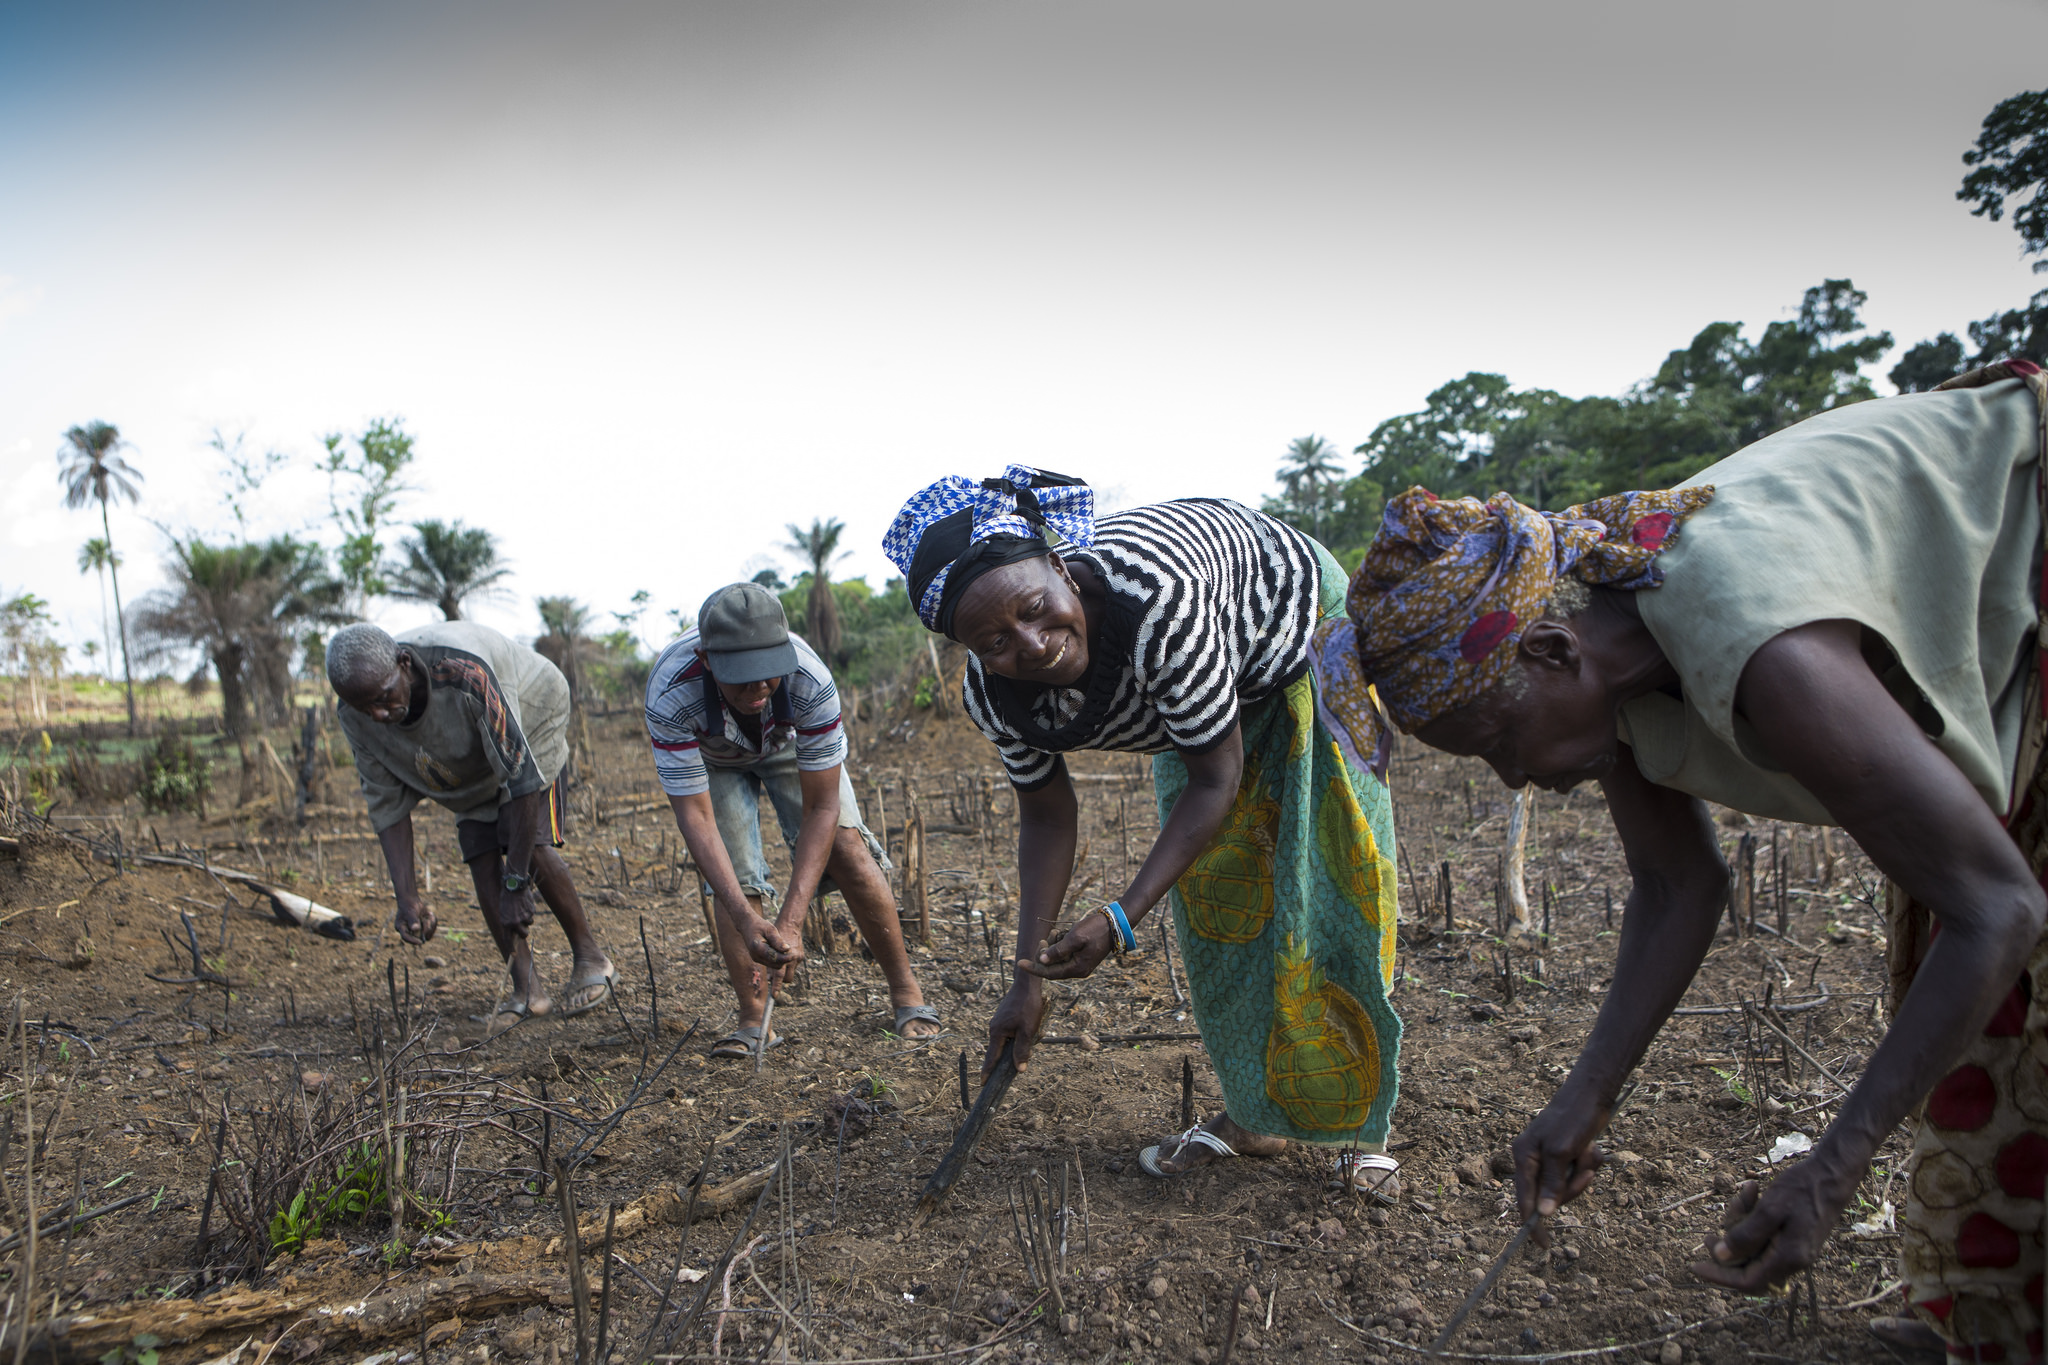 The Gendenmawa OPA has invested in a community groundnut farm (c) Simon Rawles/Age International